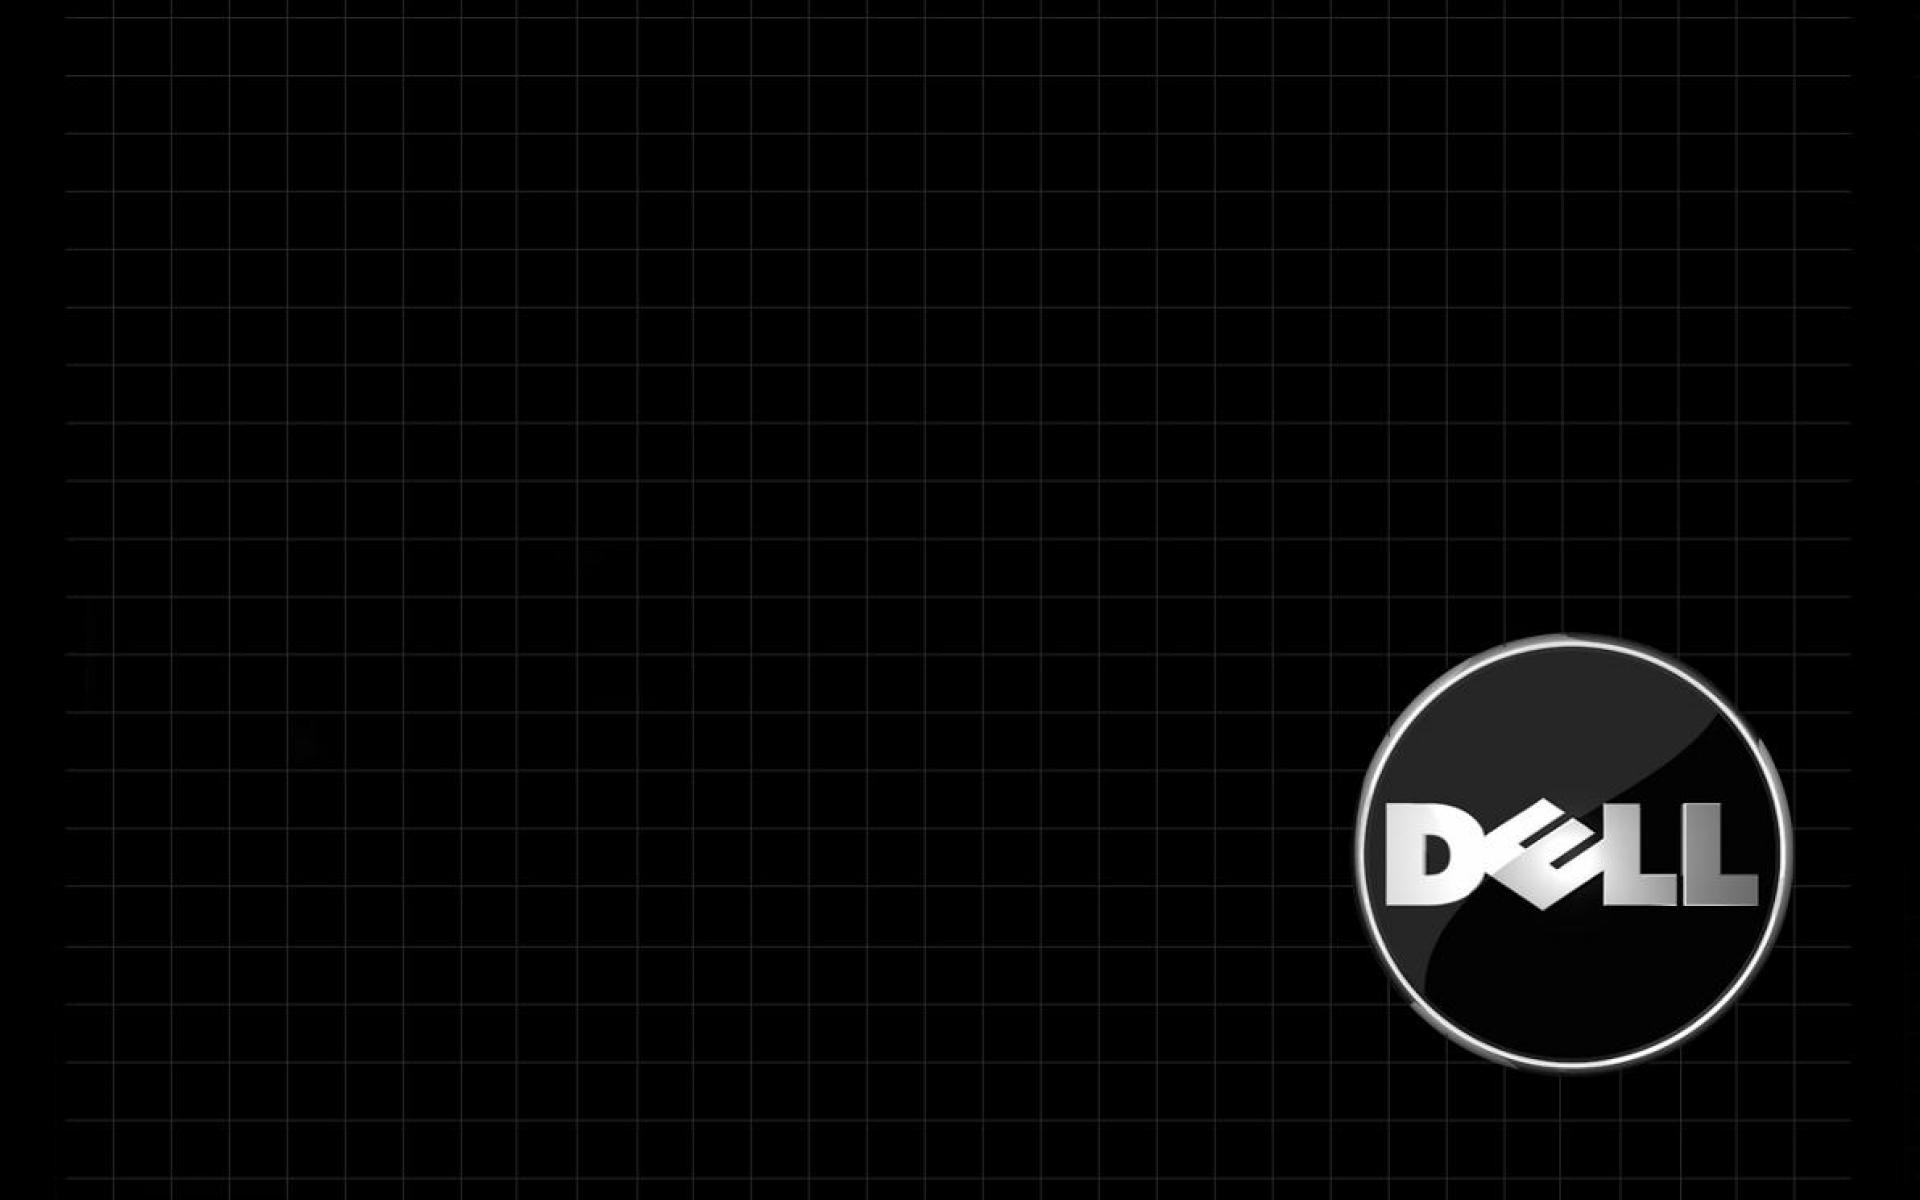 1920x1200 Dell Logo Wallpapers Free Download.